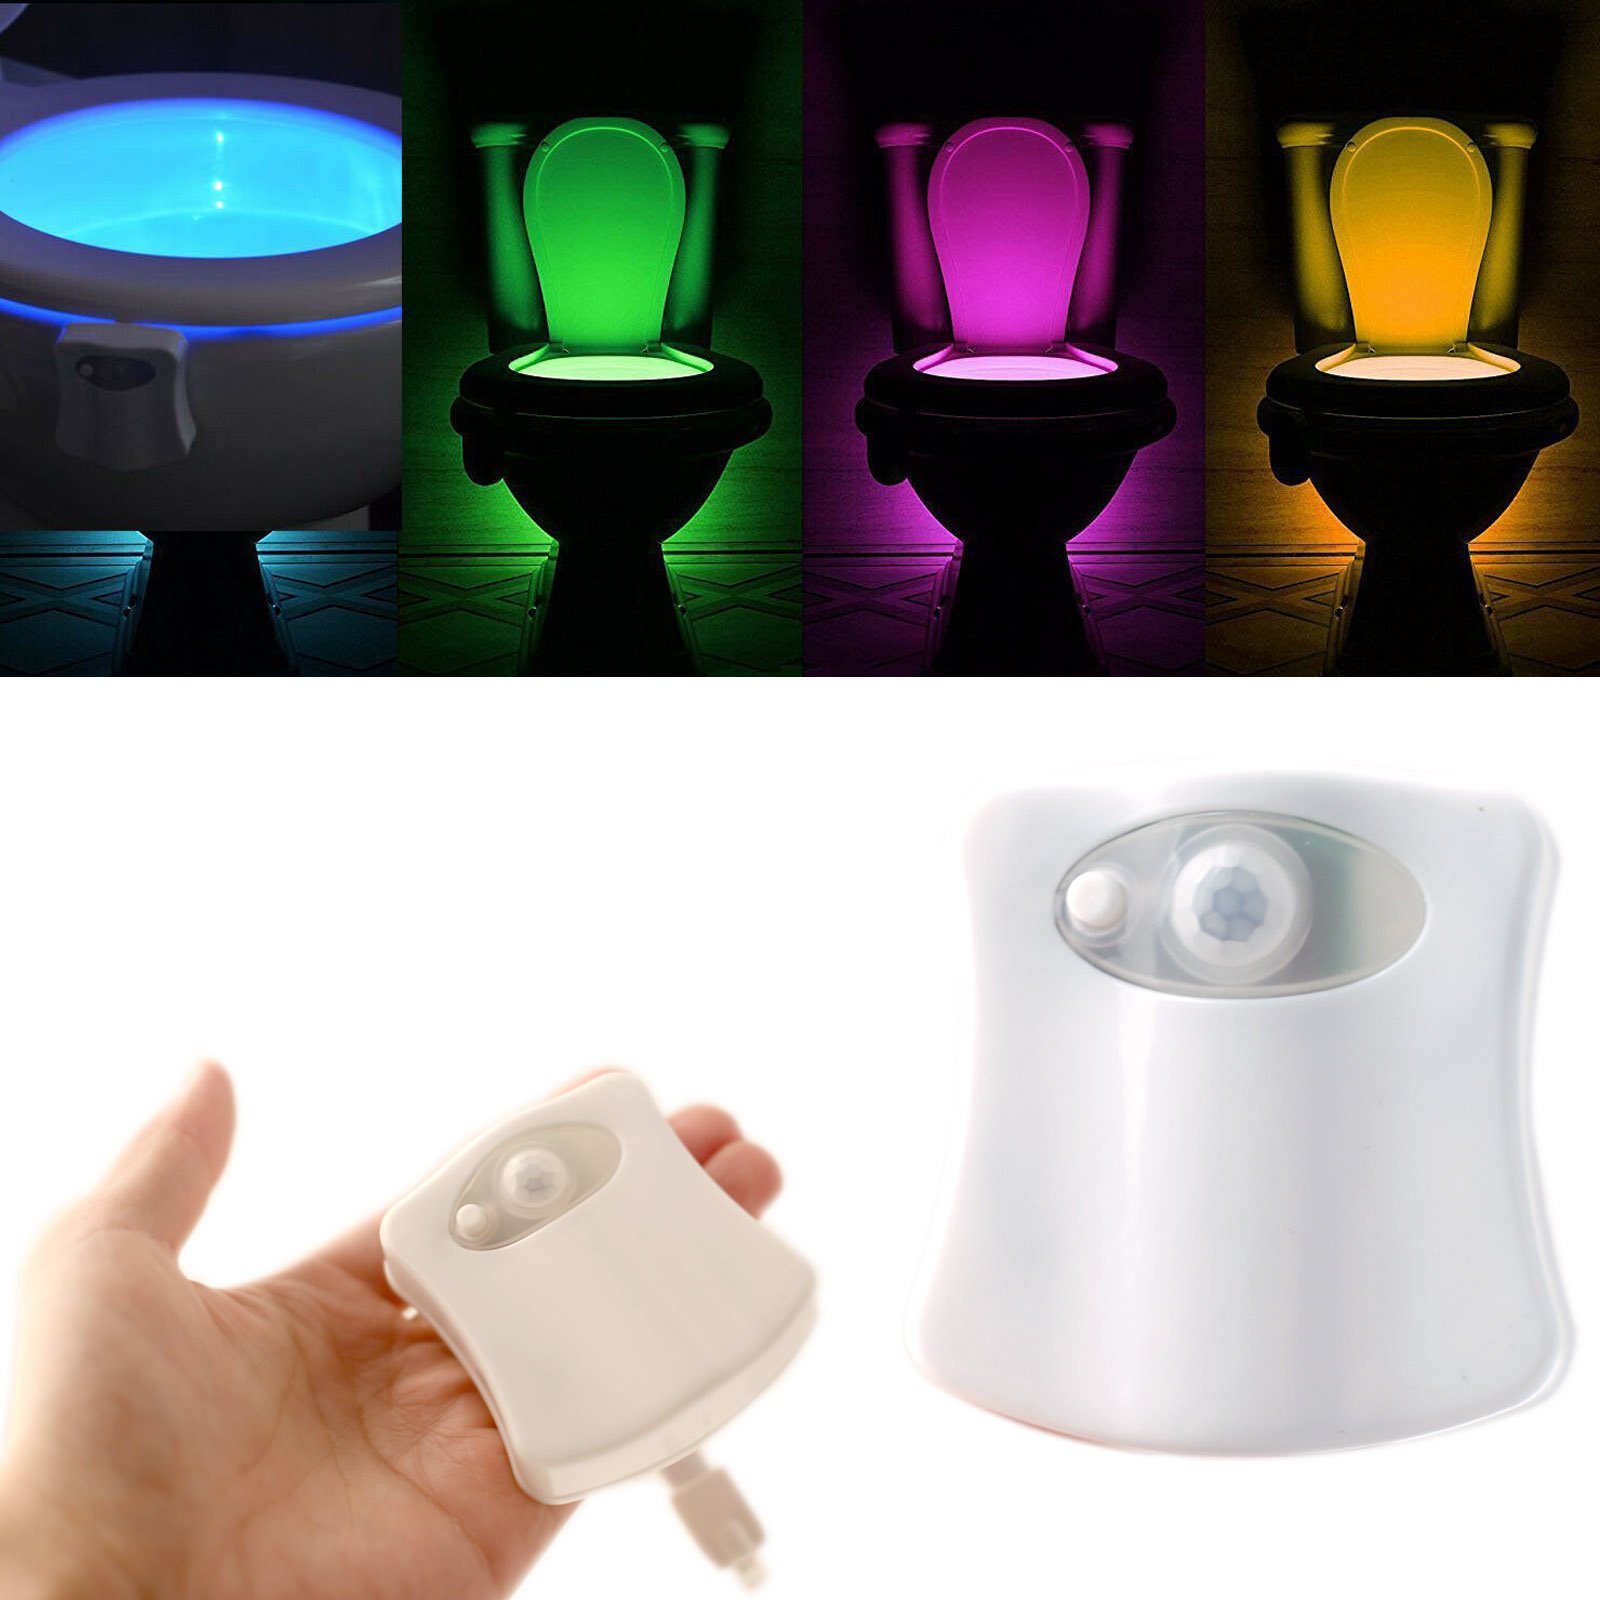 8 Colors PIR Motion Sensor Smart Toilet Seat Night Light Waterproof Backlight For Toilet Bowl LED Luminaria Lamp WC Toilet Light